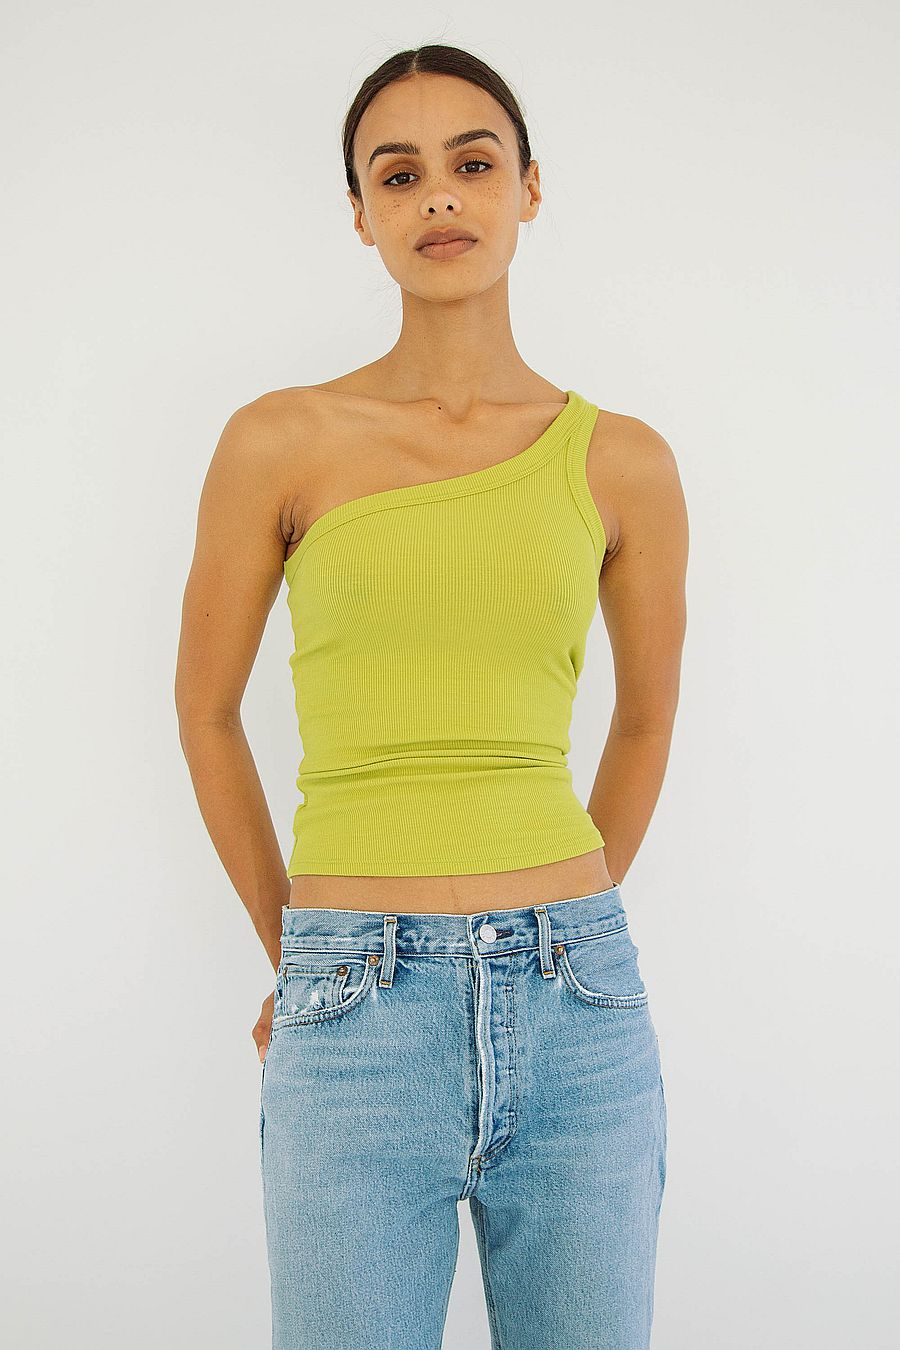 The Line by K Driss Tank - Chartreuse